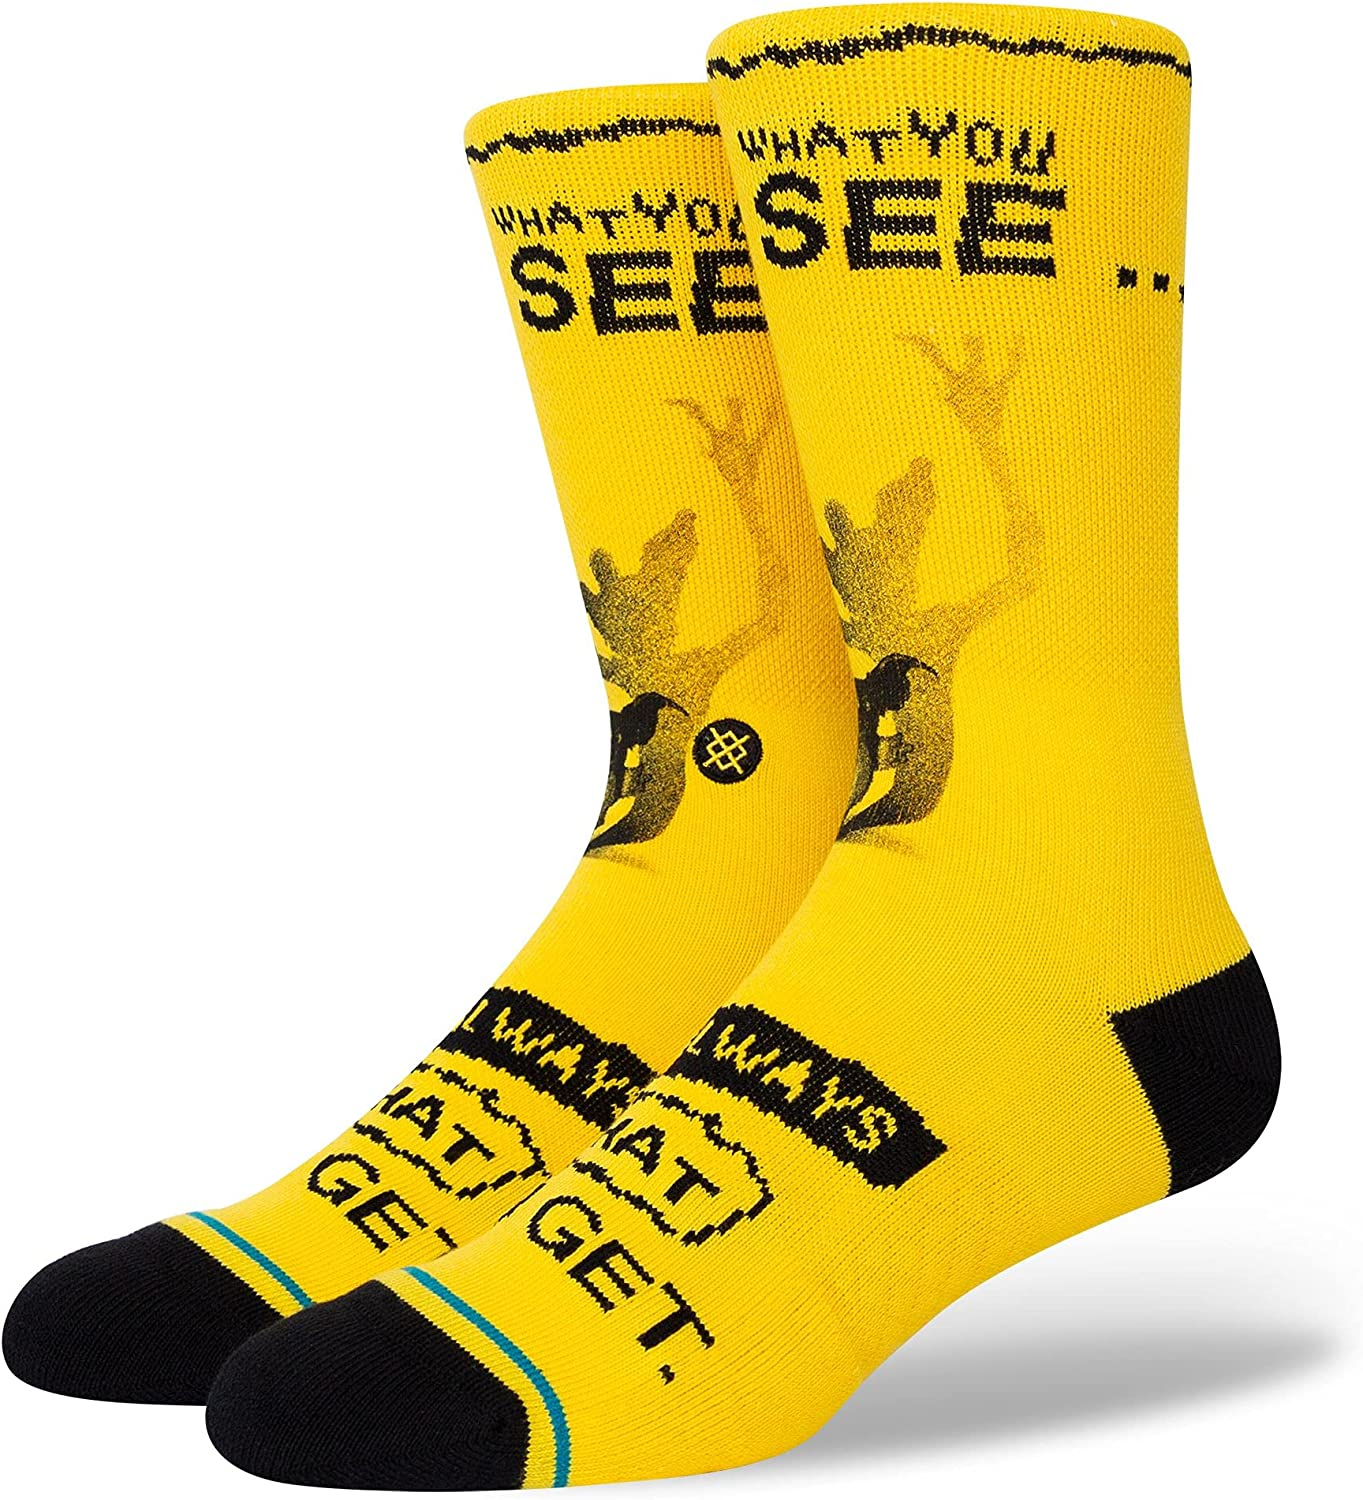 Stance What You Get Crew Socks